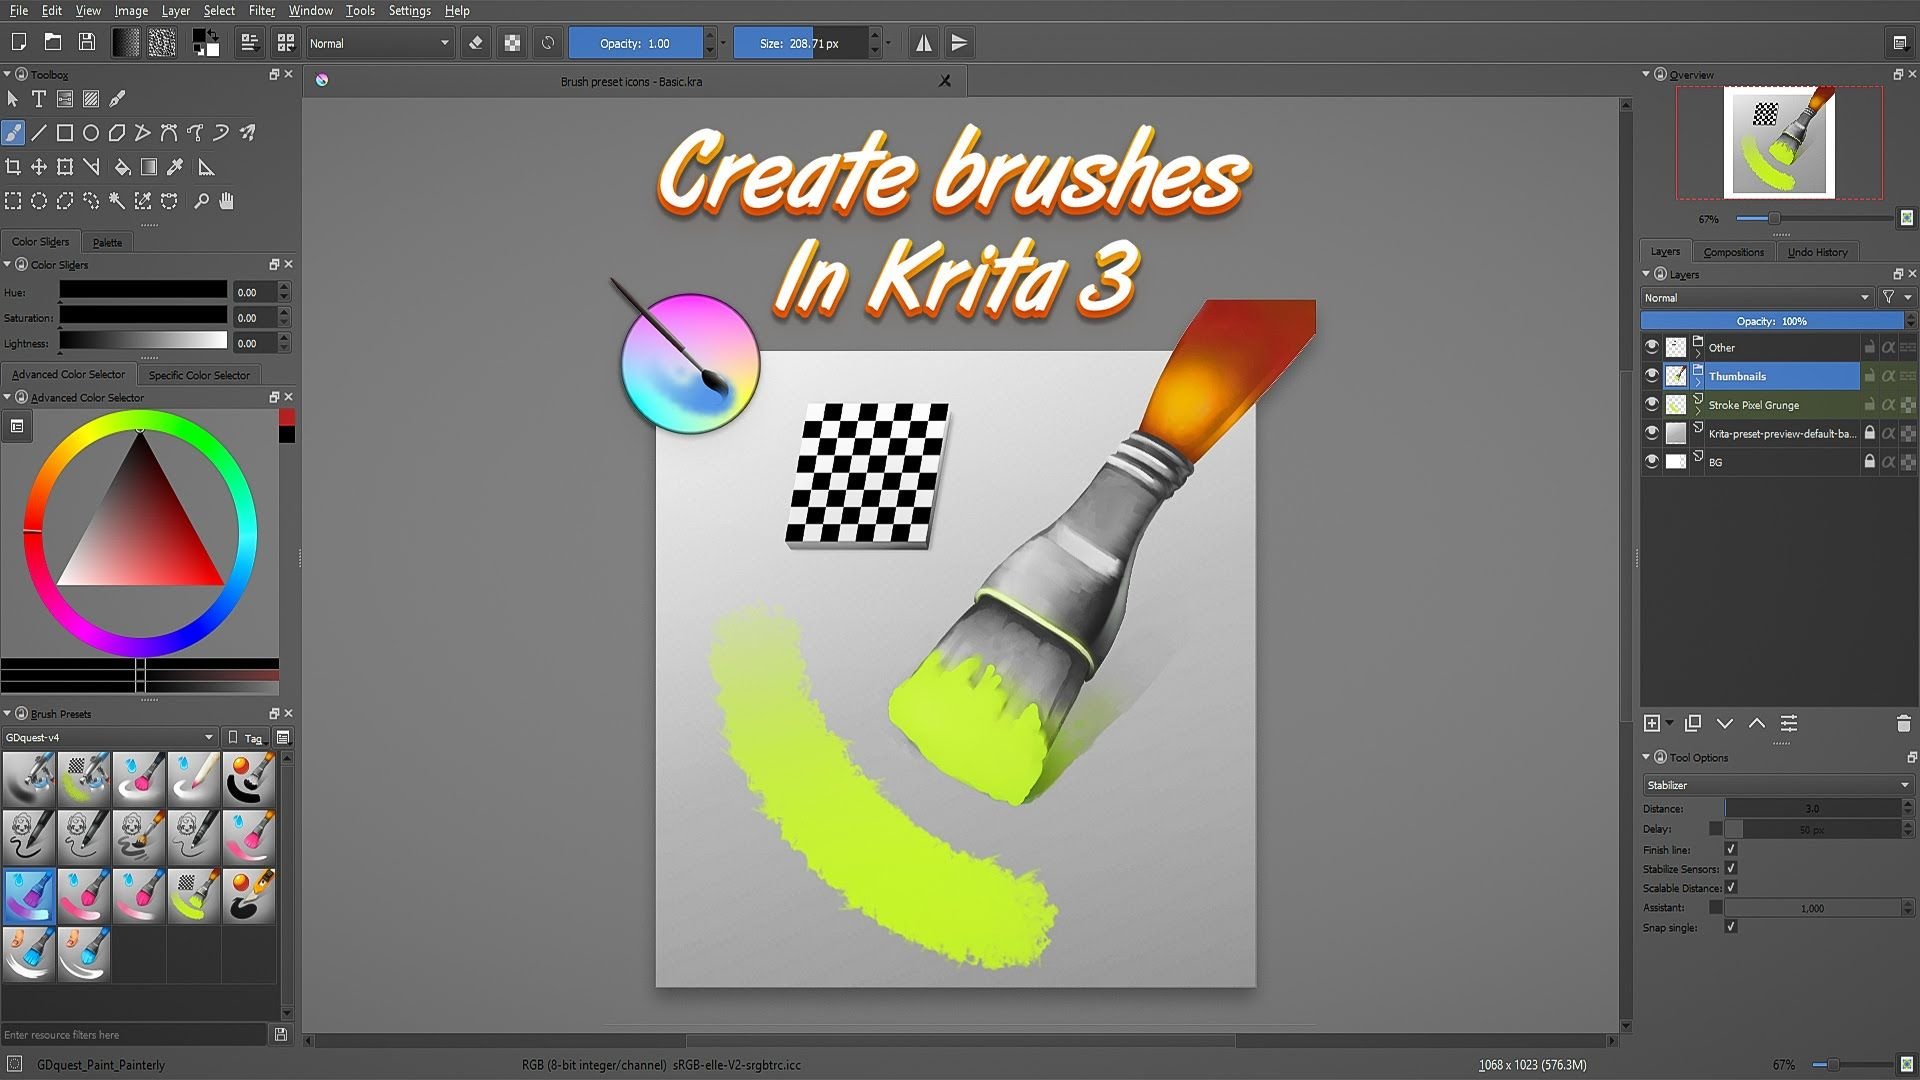 Learn how to make your own brushes in Krita 3! Krita